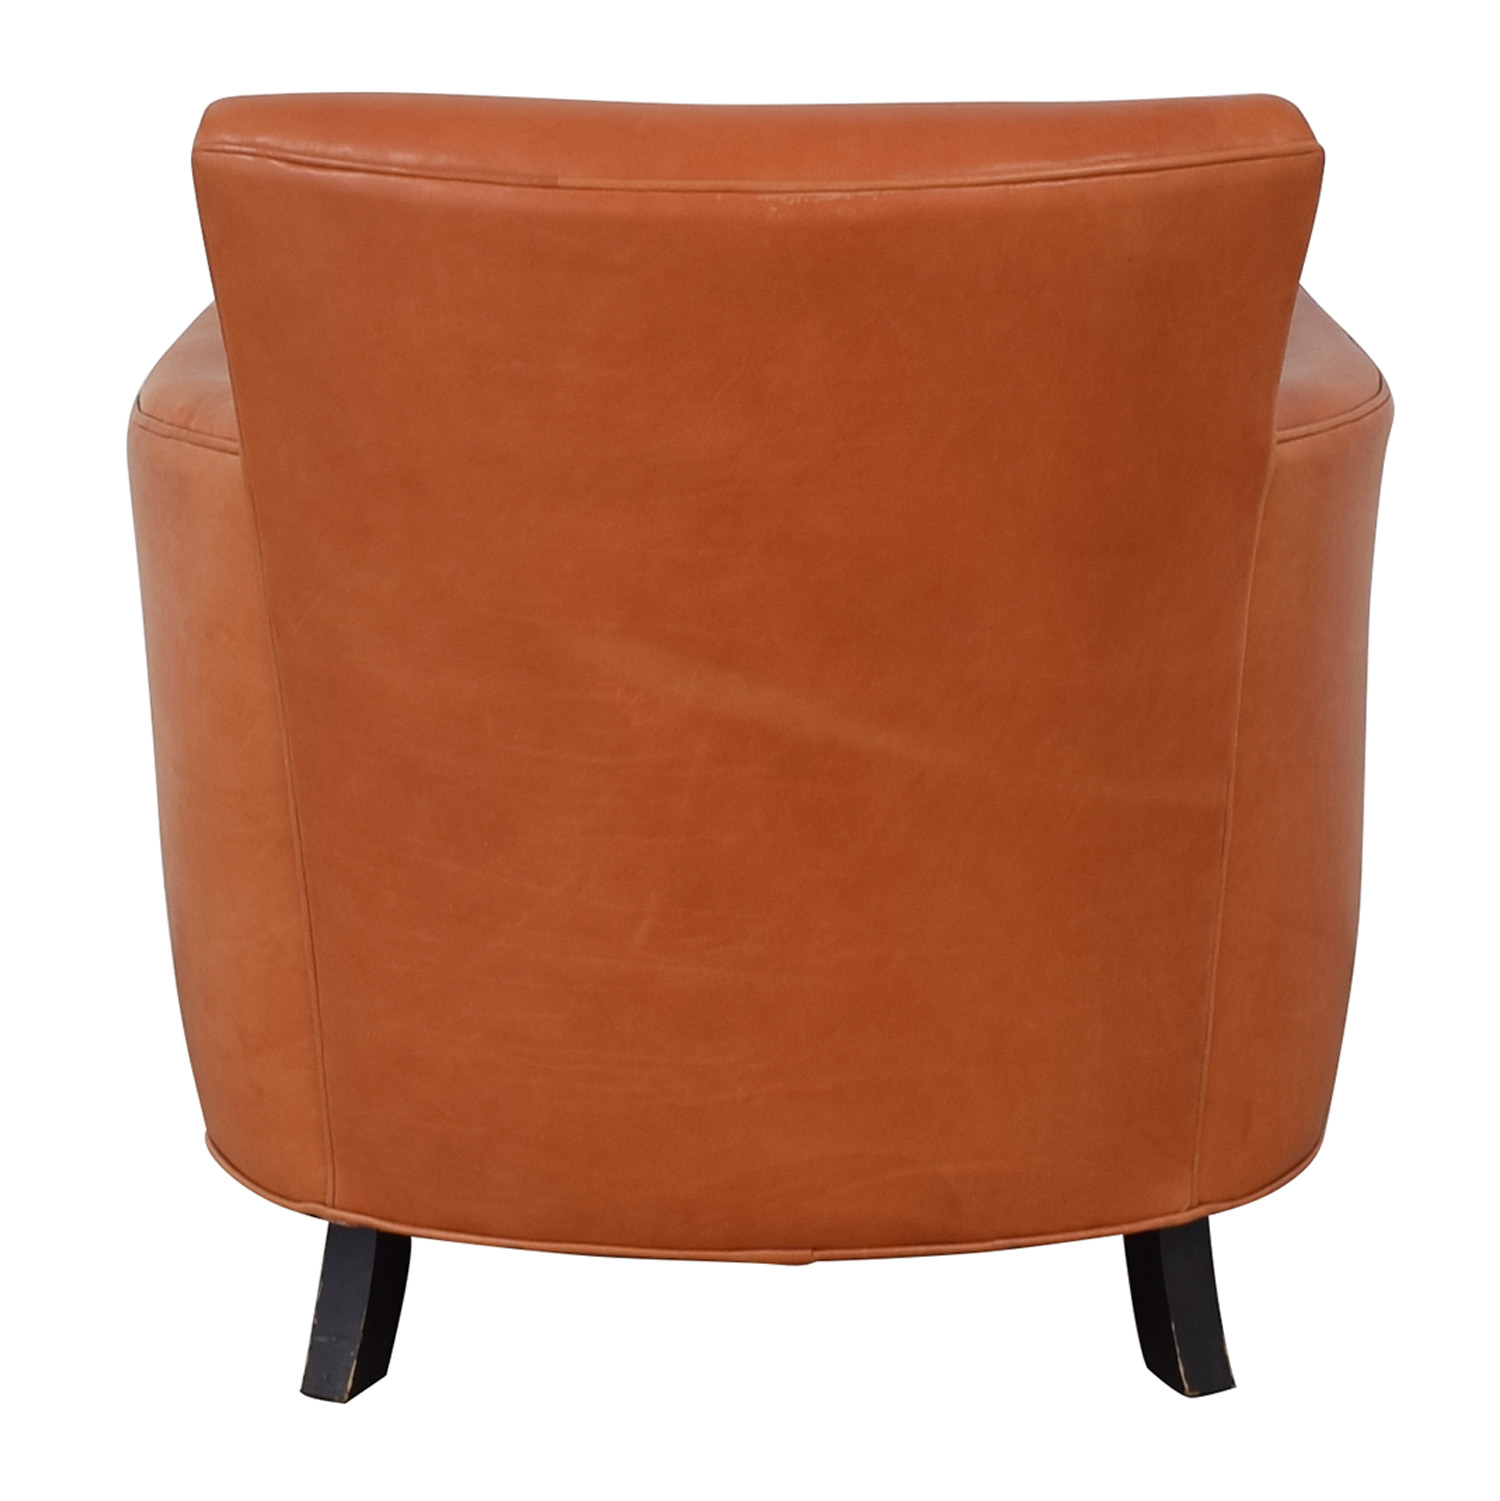 Crate & Barrel Crate & Barrel Orange Accent Chair price